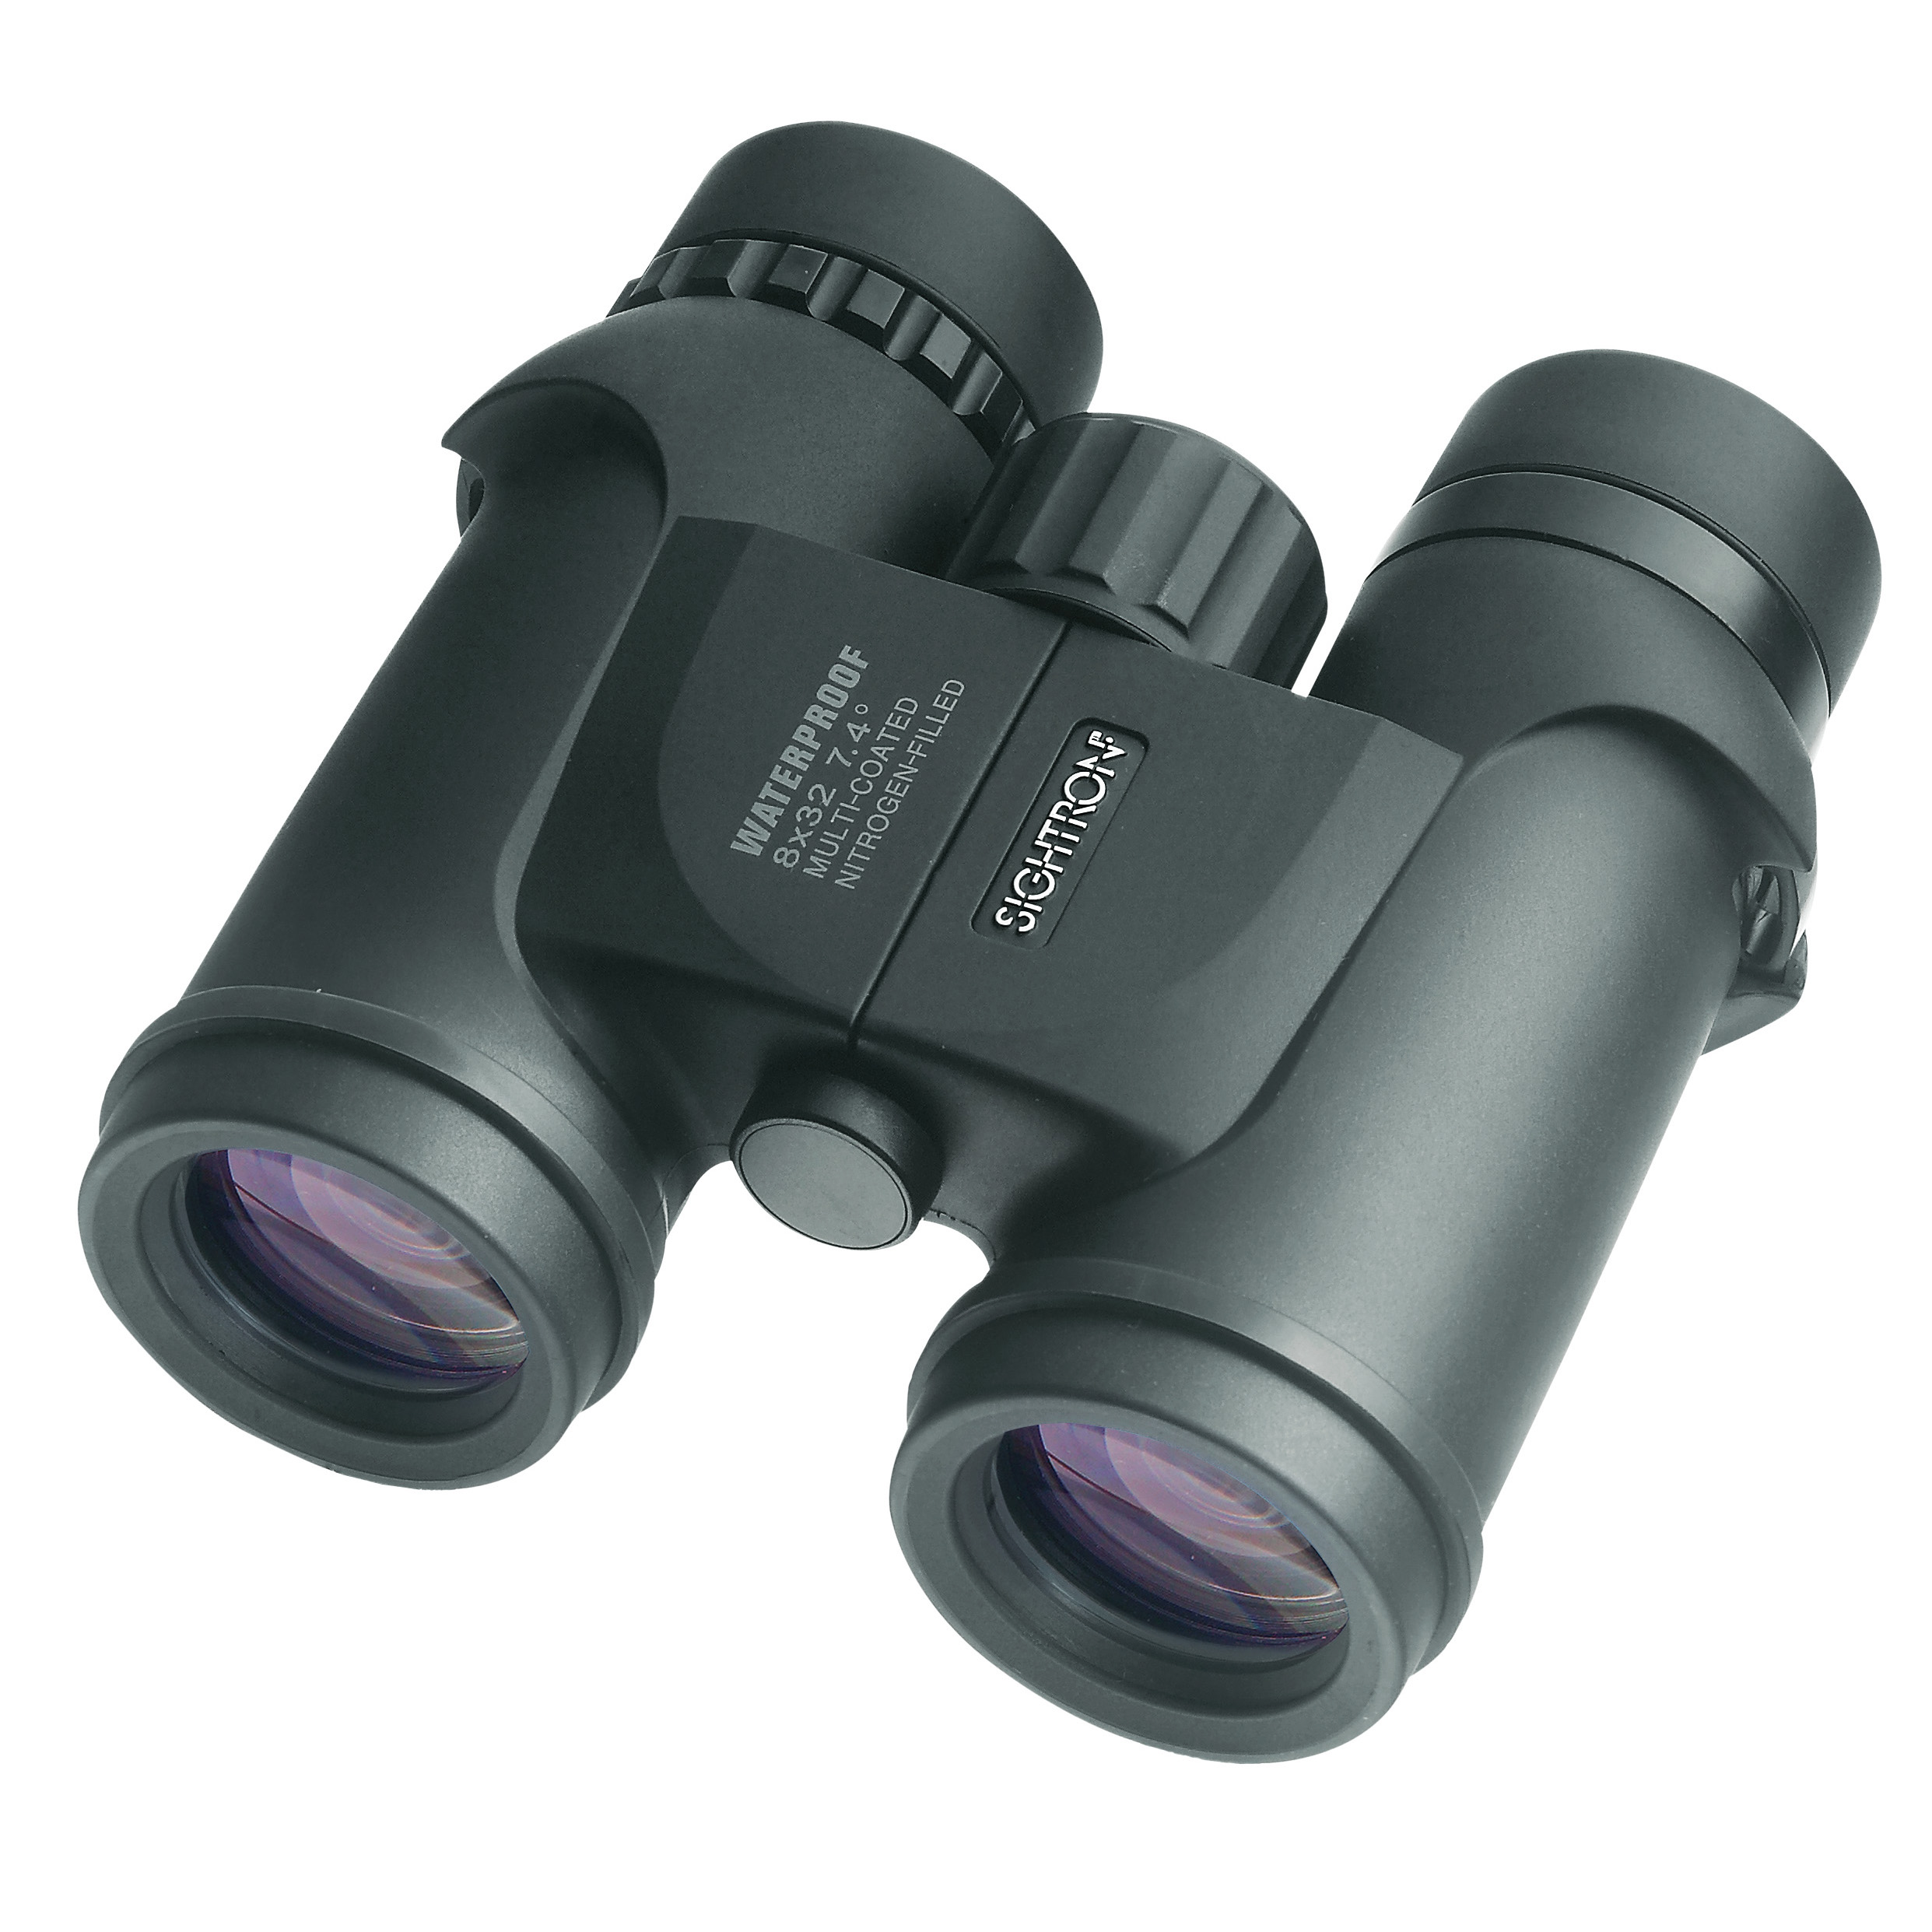 Sightron SI Series Binocular Roof Prism 8x32mm by Sightron